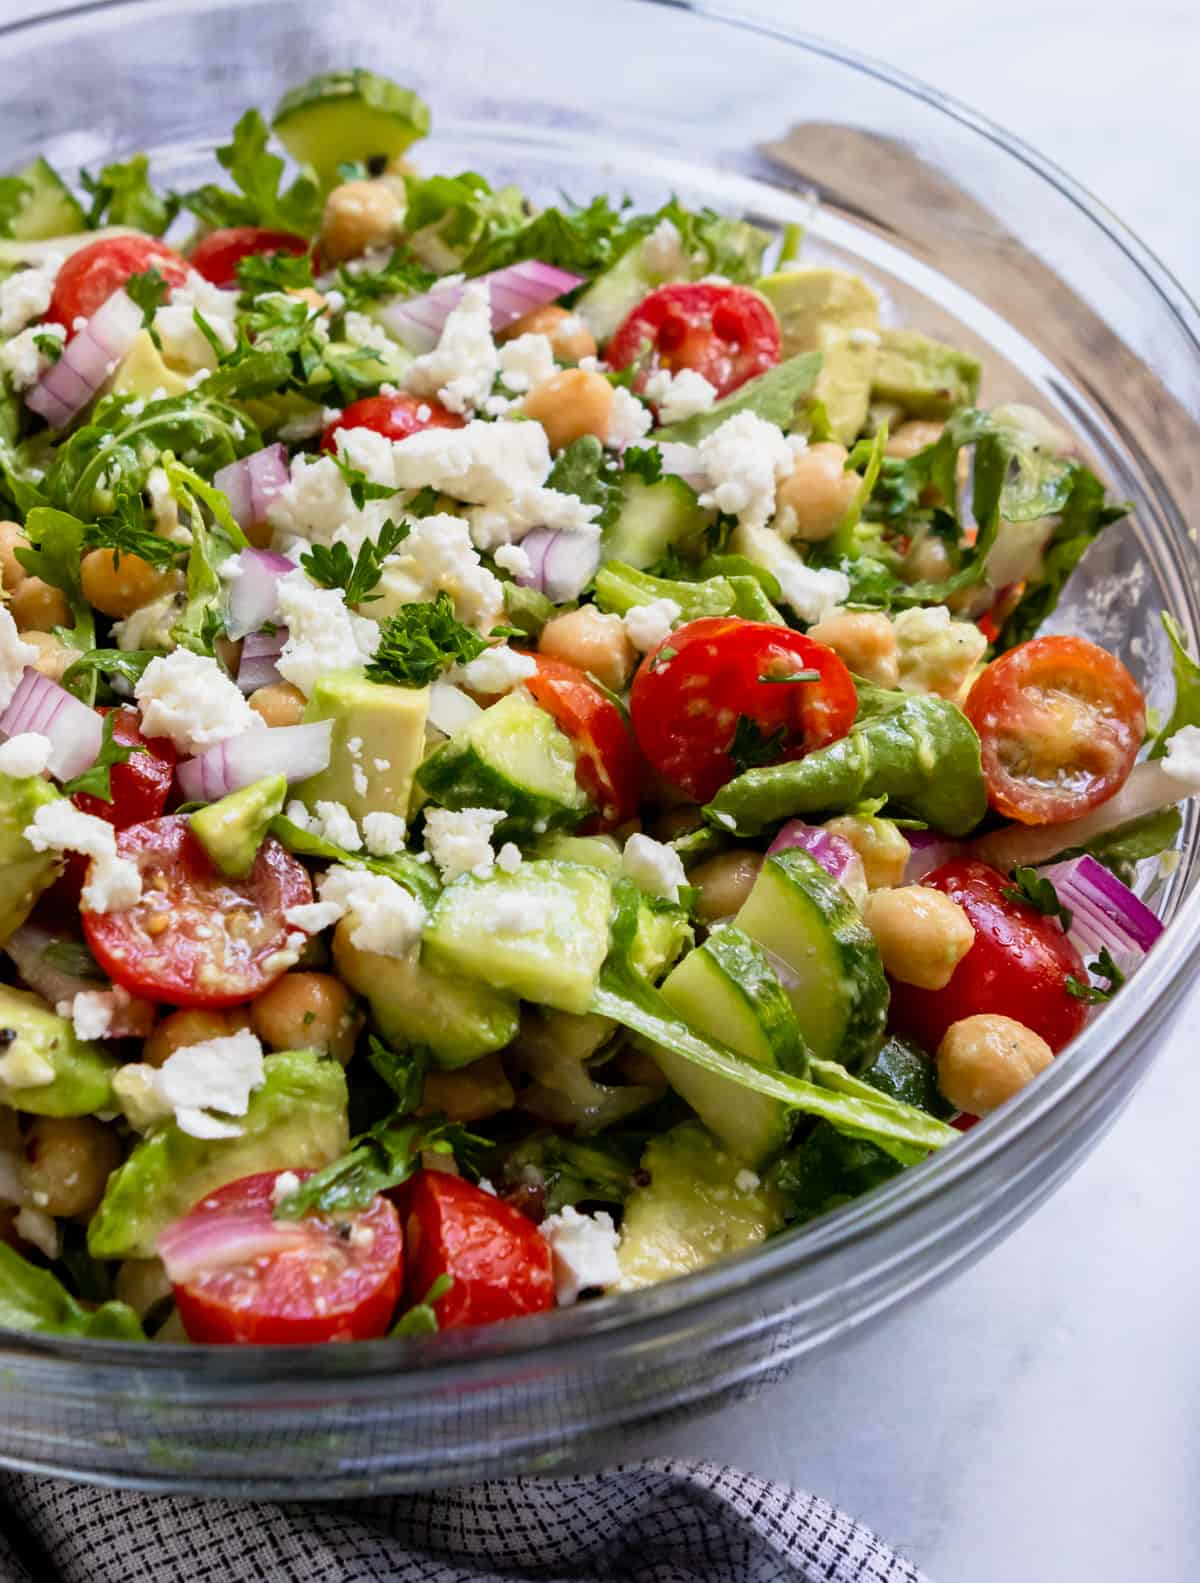 Chickpea avocado salad in clear bowl with fresh parsley.